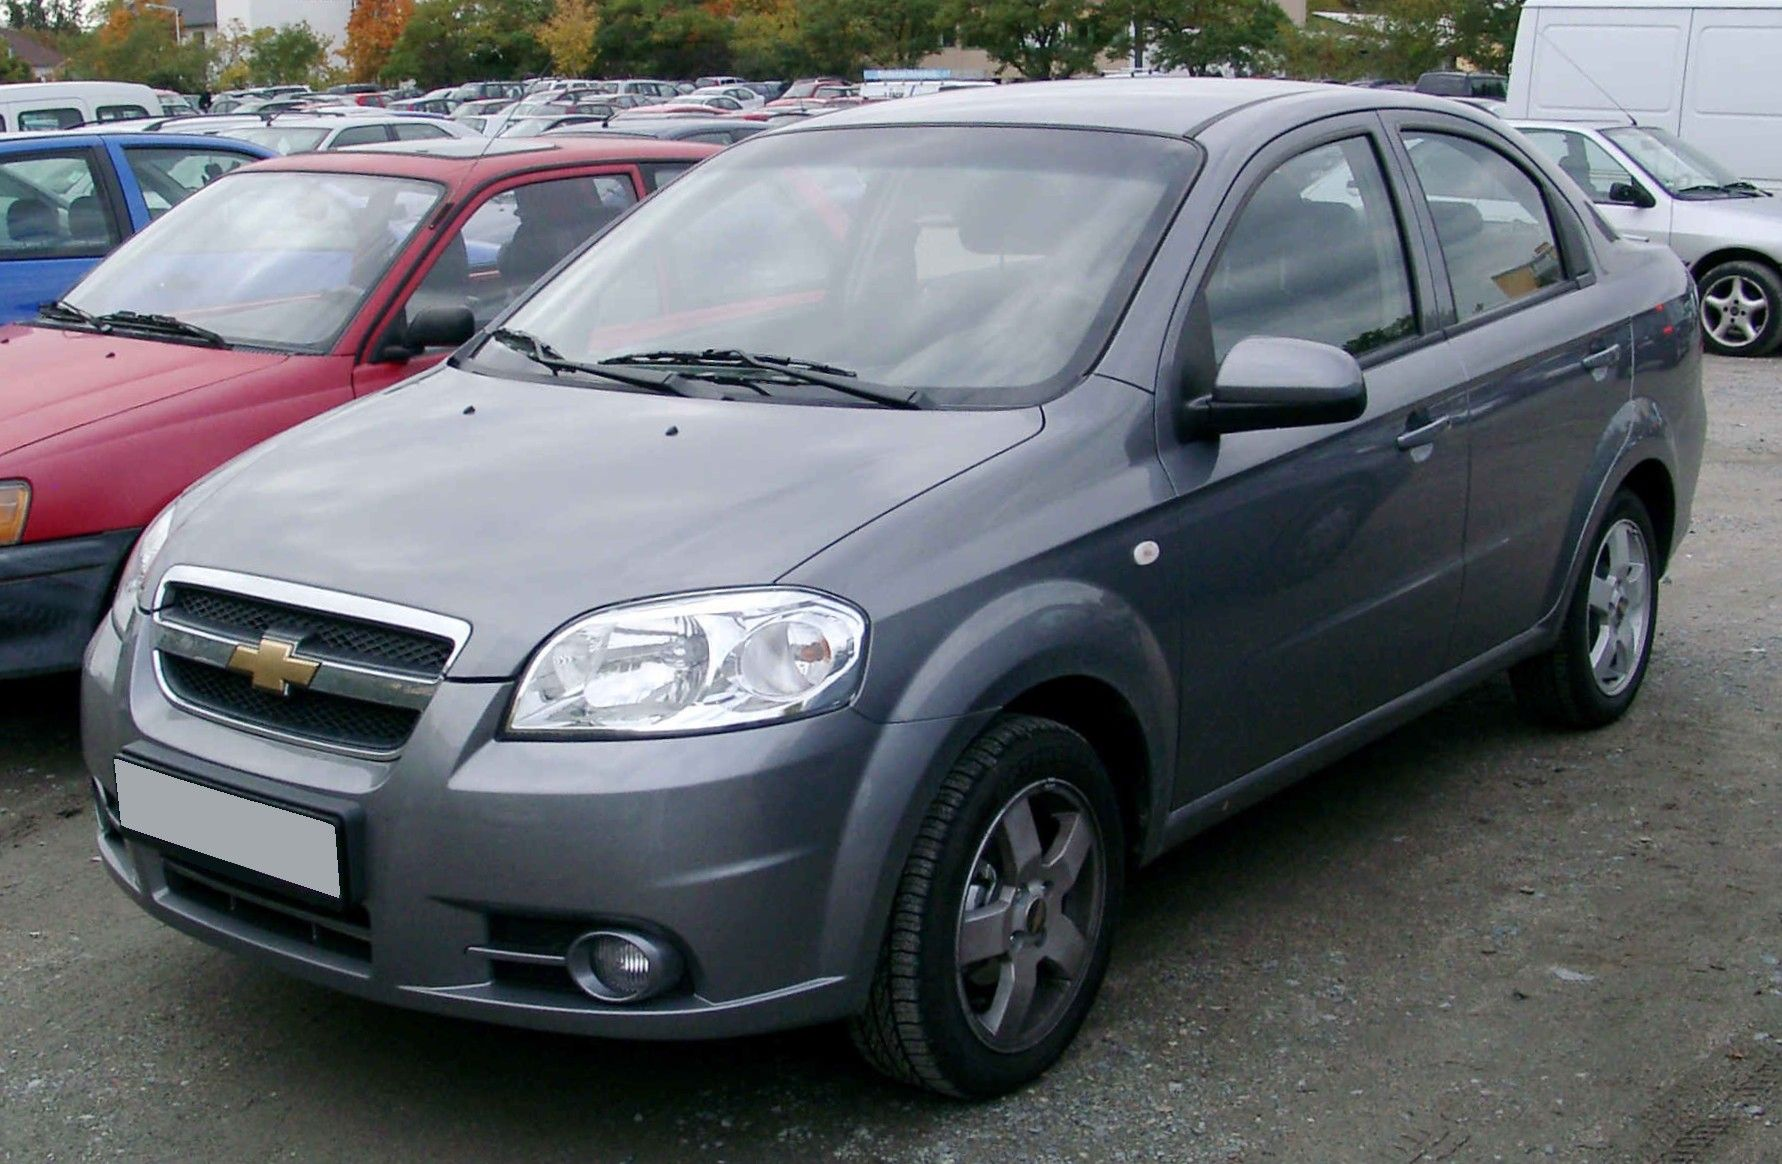 Missing Link Chevrolet Aveo Subcompact Cars Vehicles